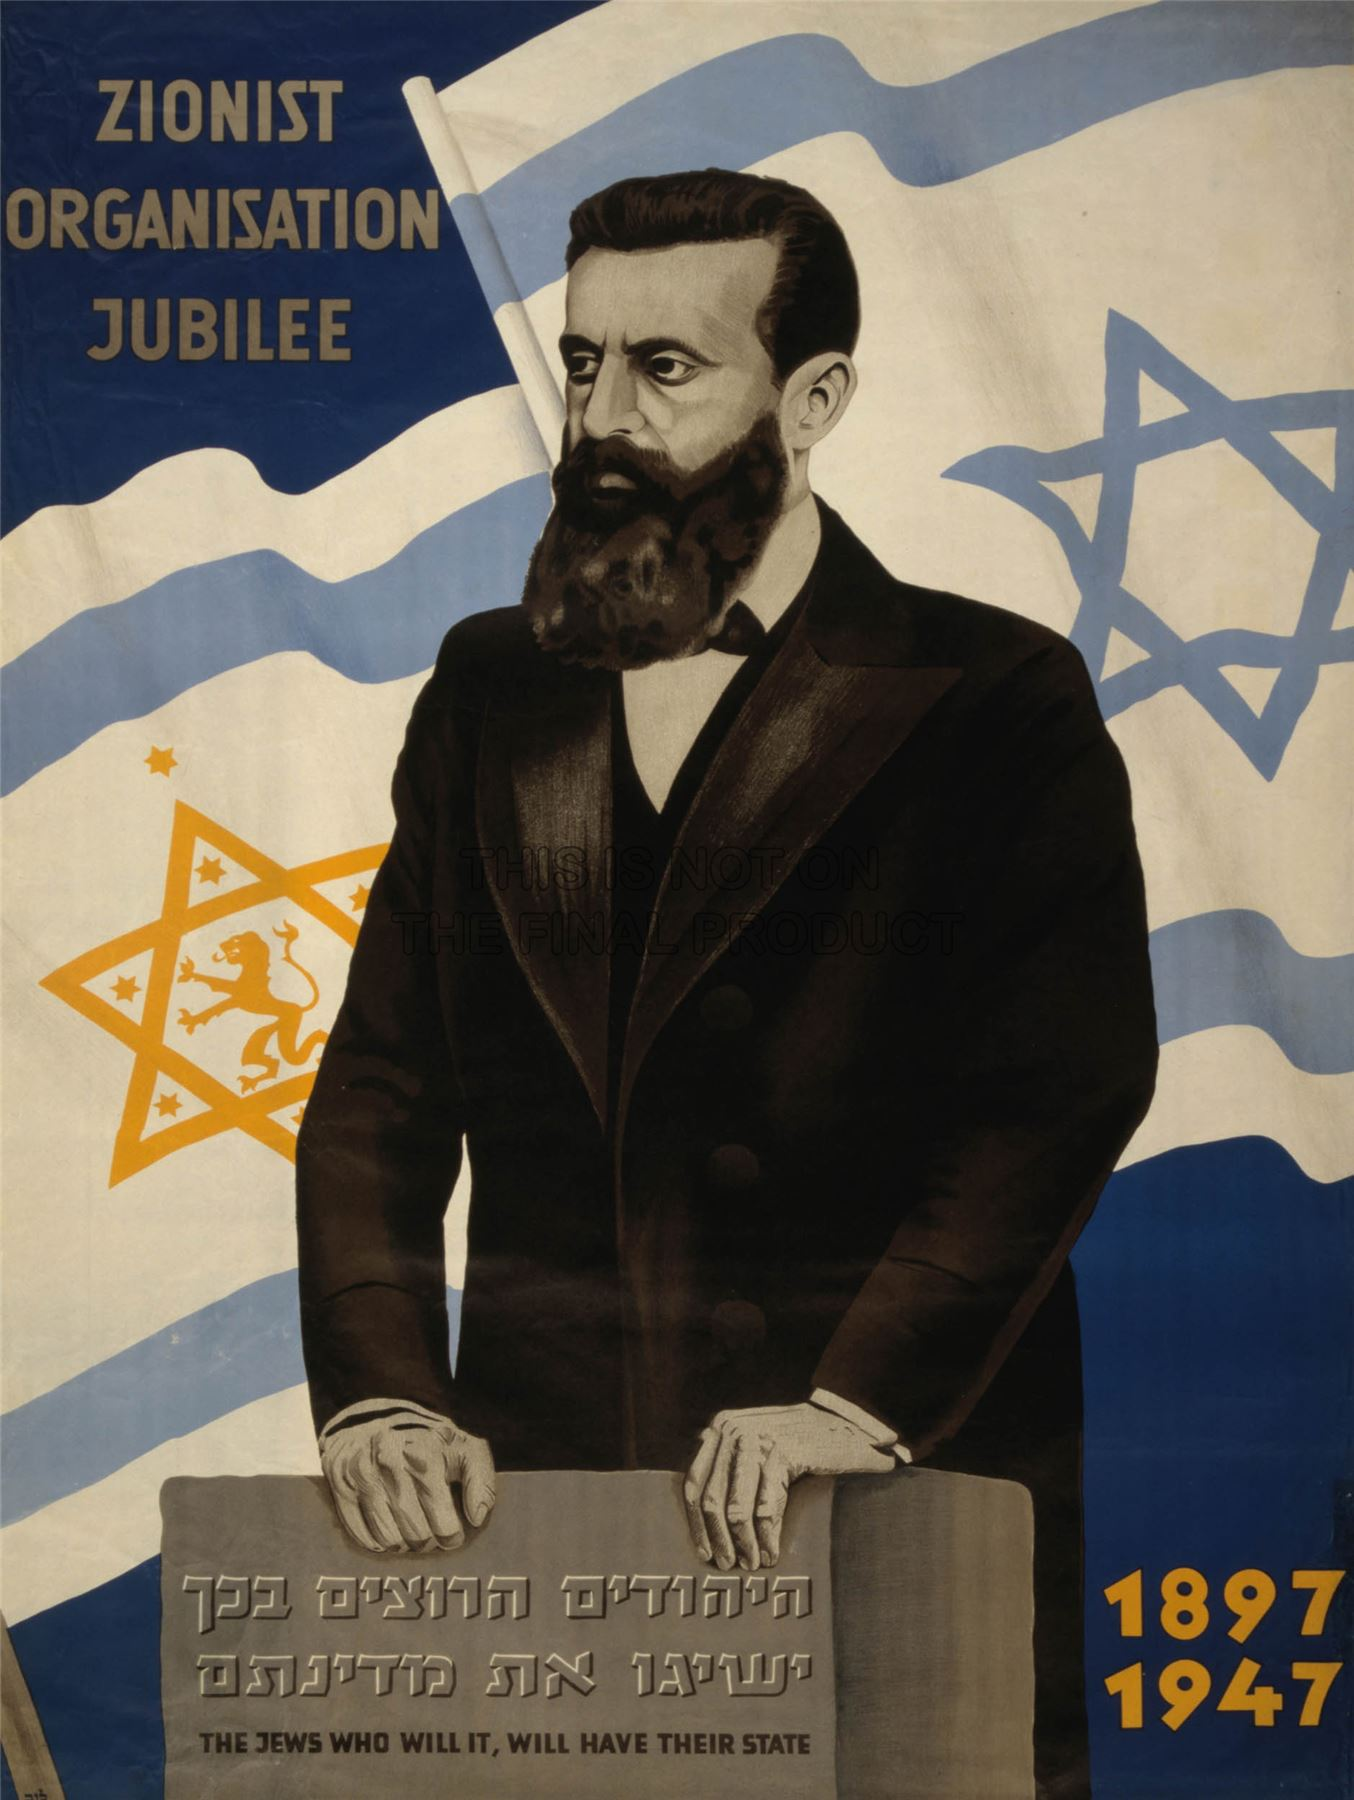 The founder of Zionism, Theodor Herzl (1860-1904) (photo)